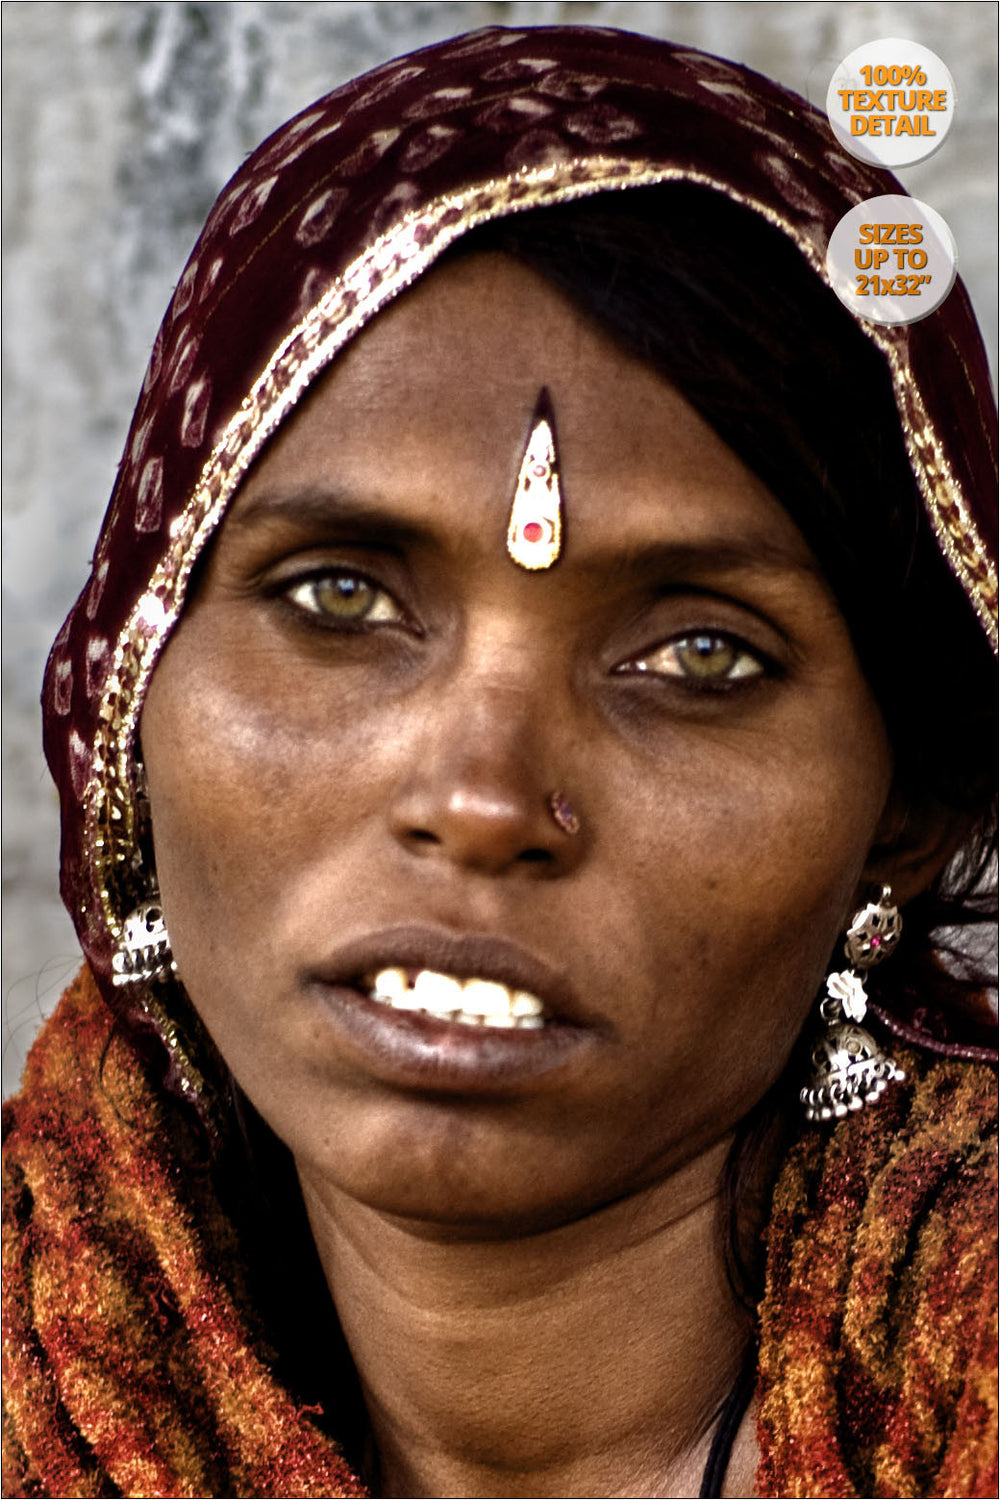 Portrait of Rajastani woman, Pushkar Camel Fair, Rajastan. | 100% Magnification Detail.